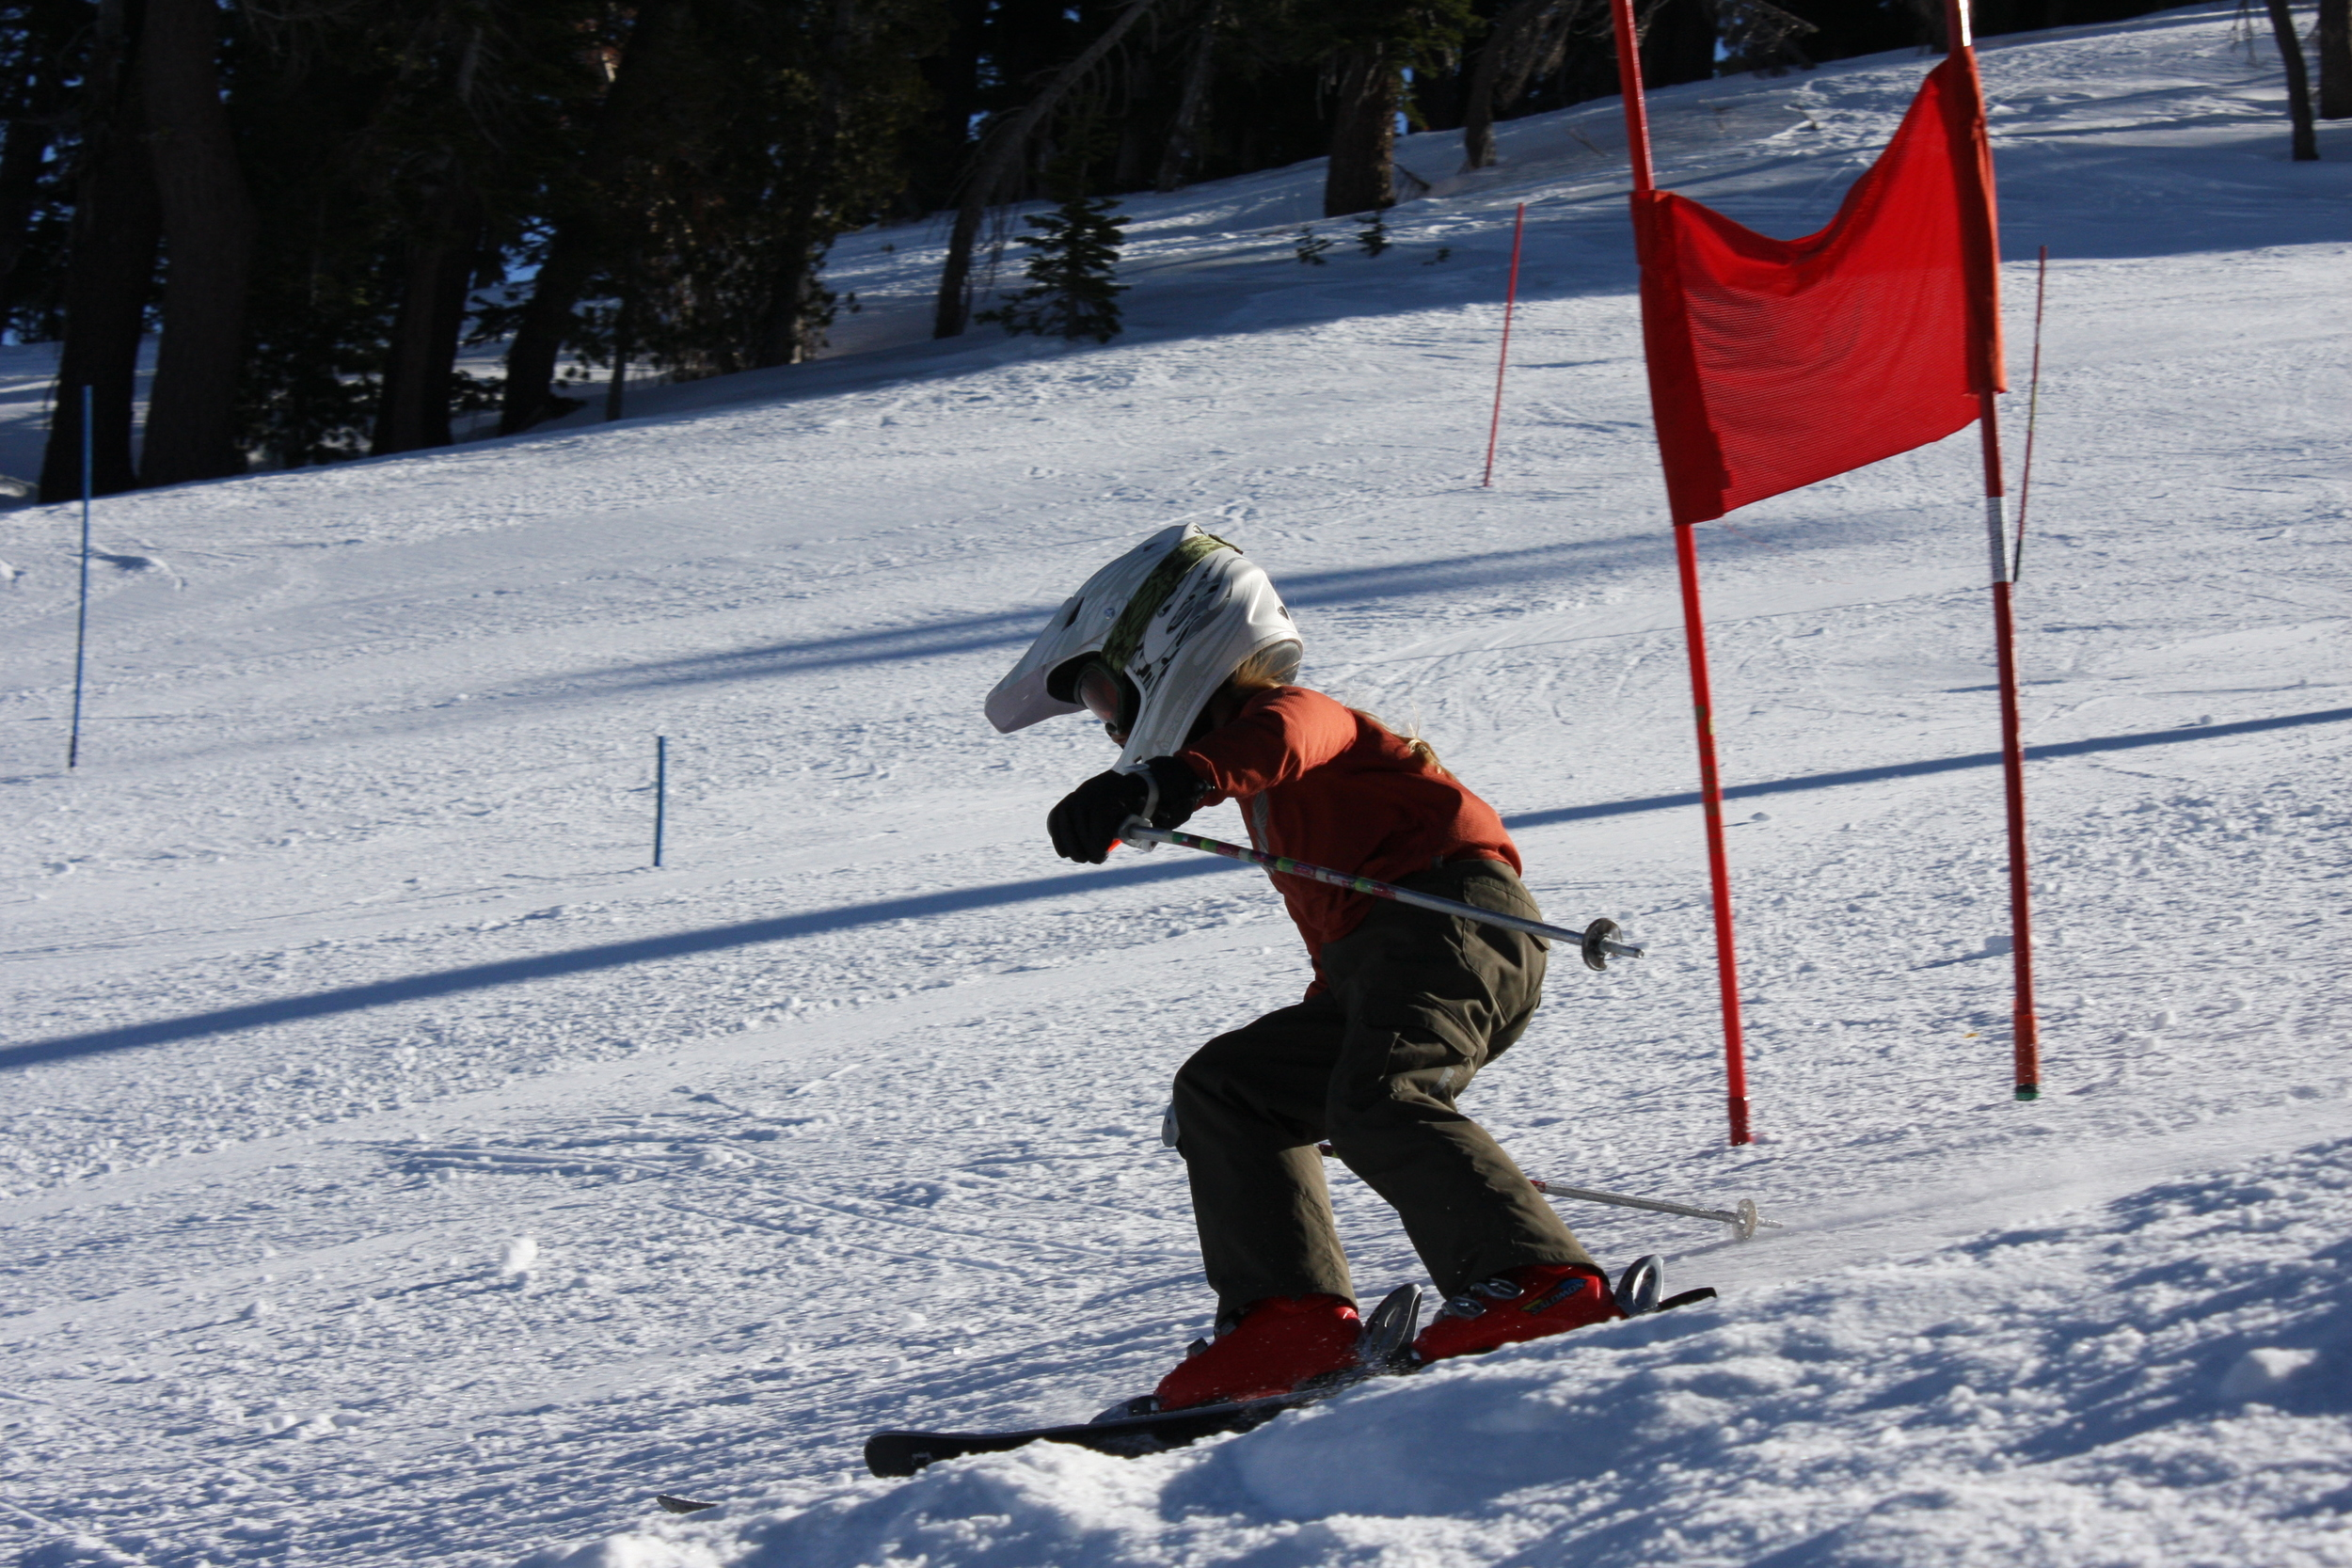 GS race at Kirkwood